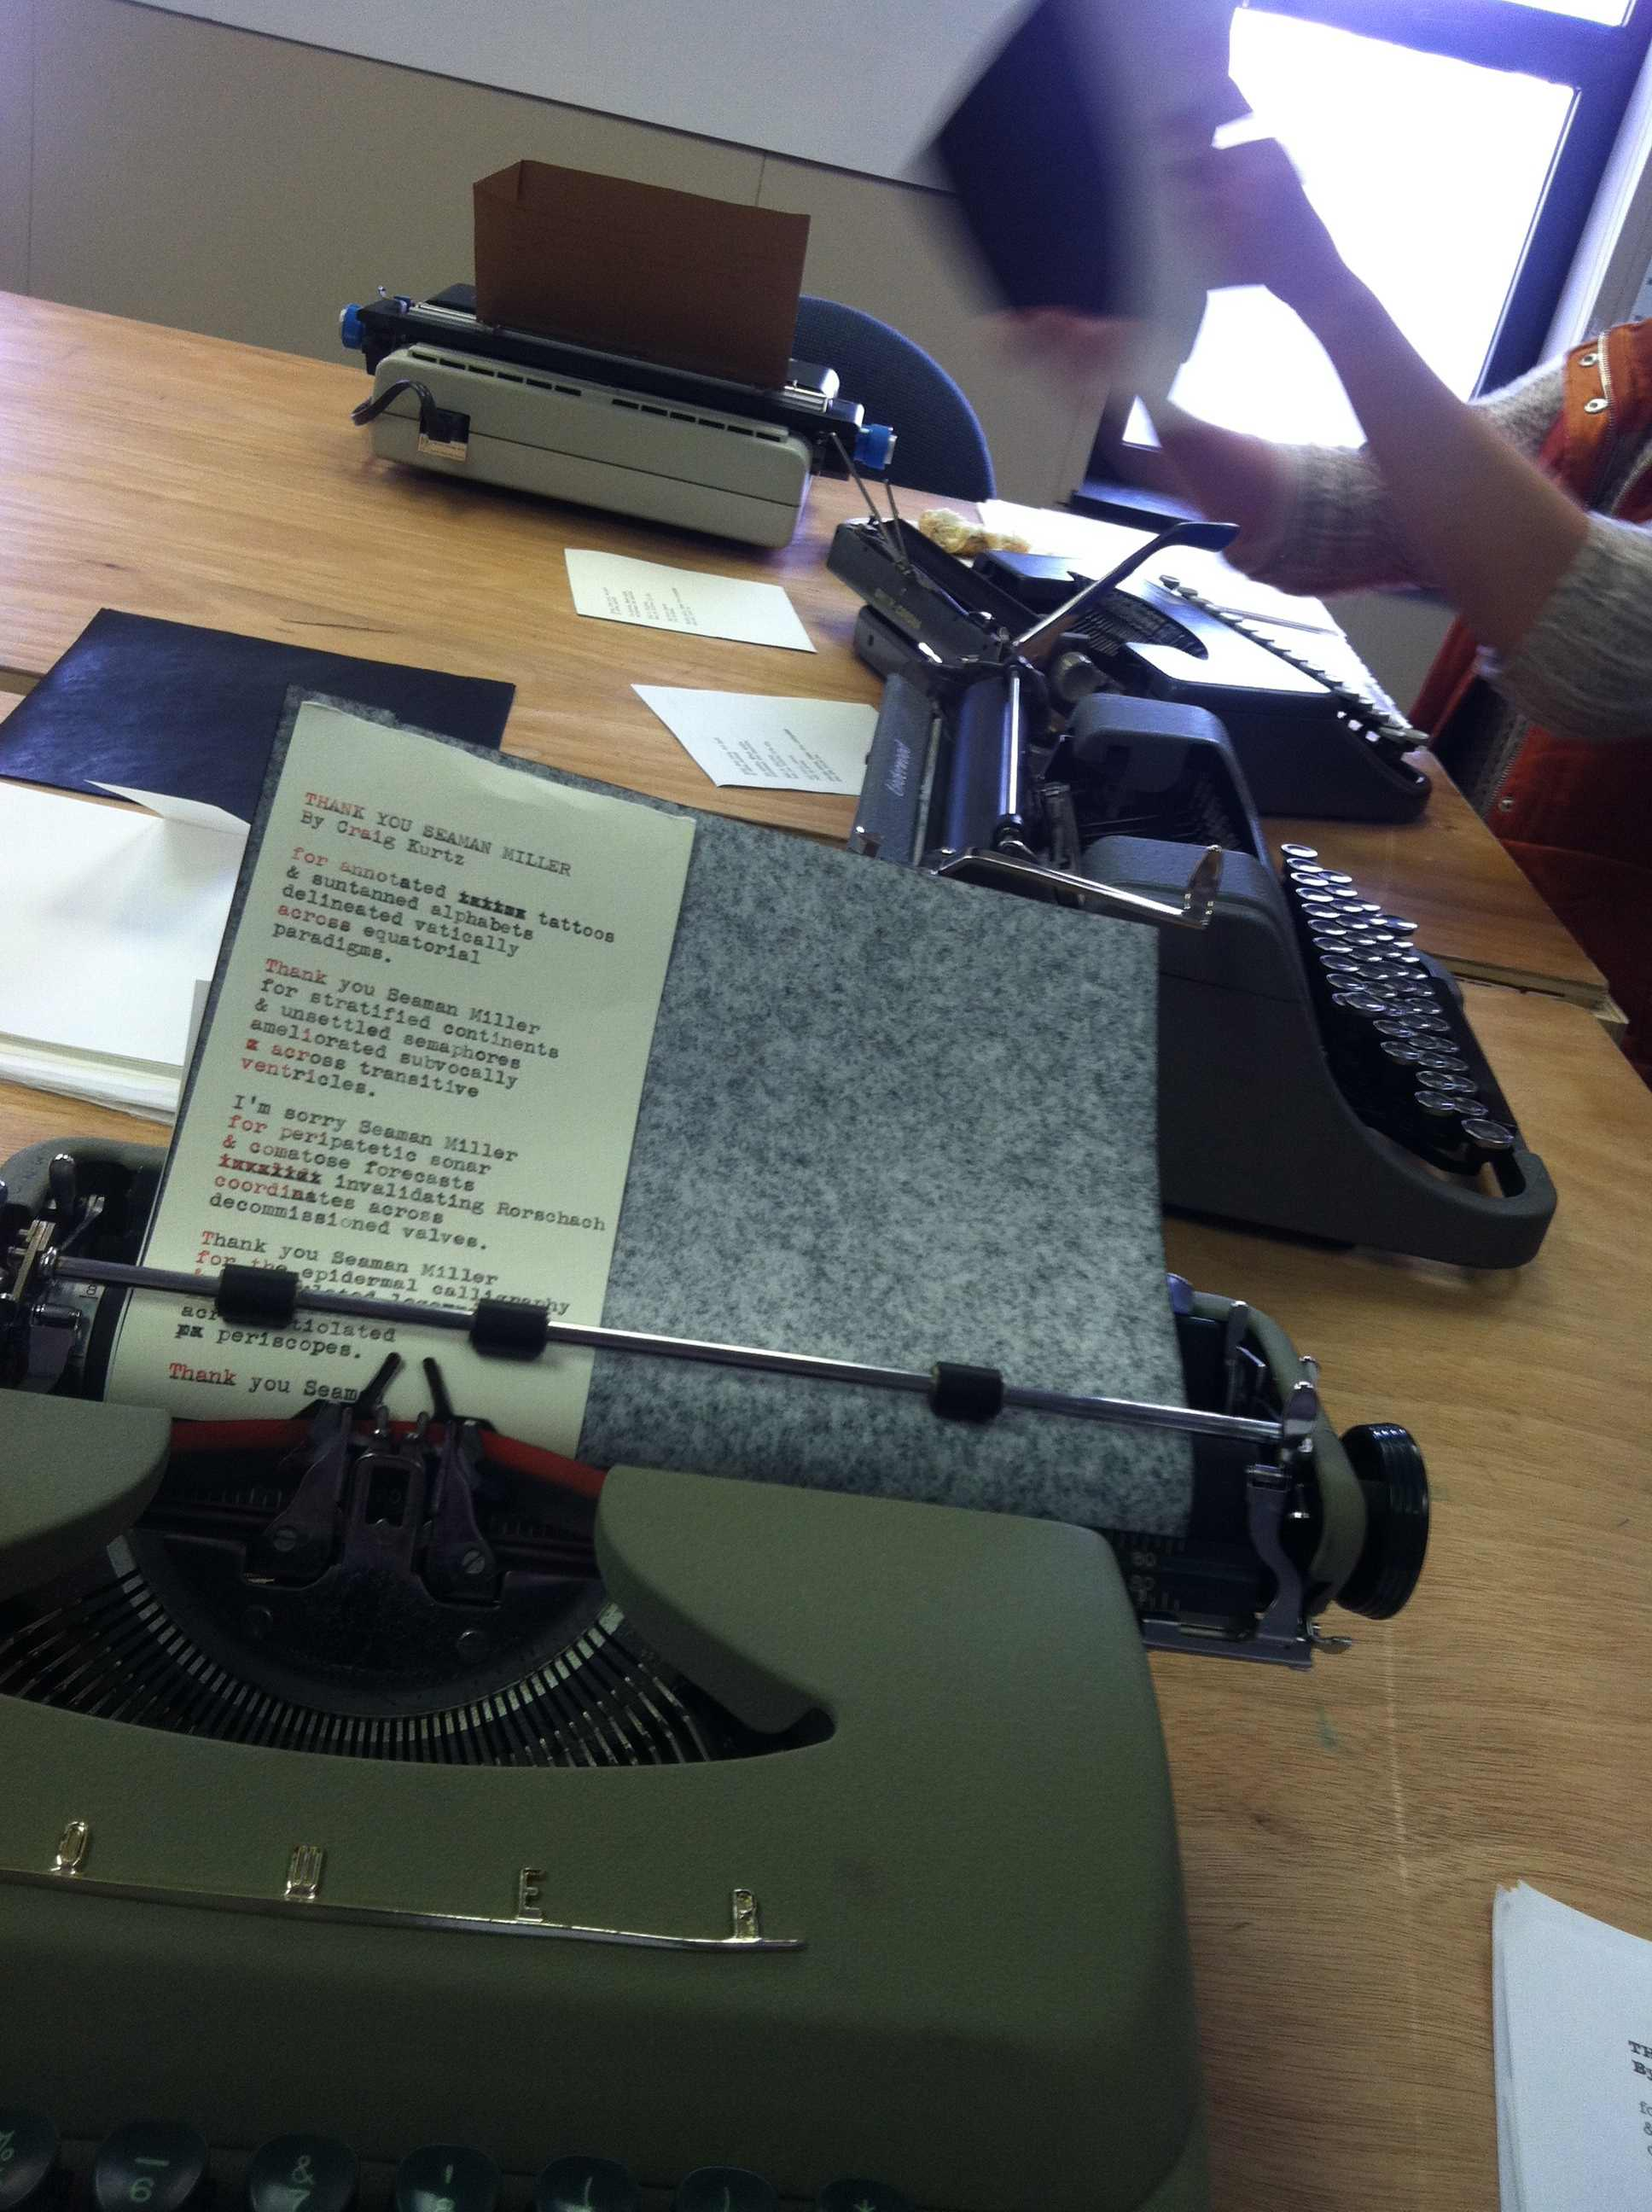 Harlequin Creature: a zine where every copy is individually hand-typed by volunteers